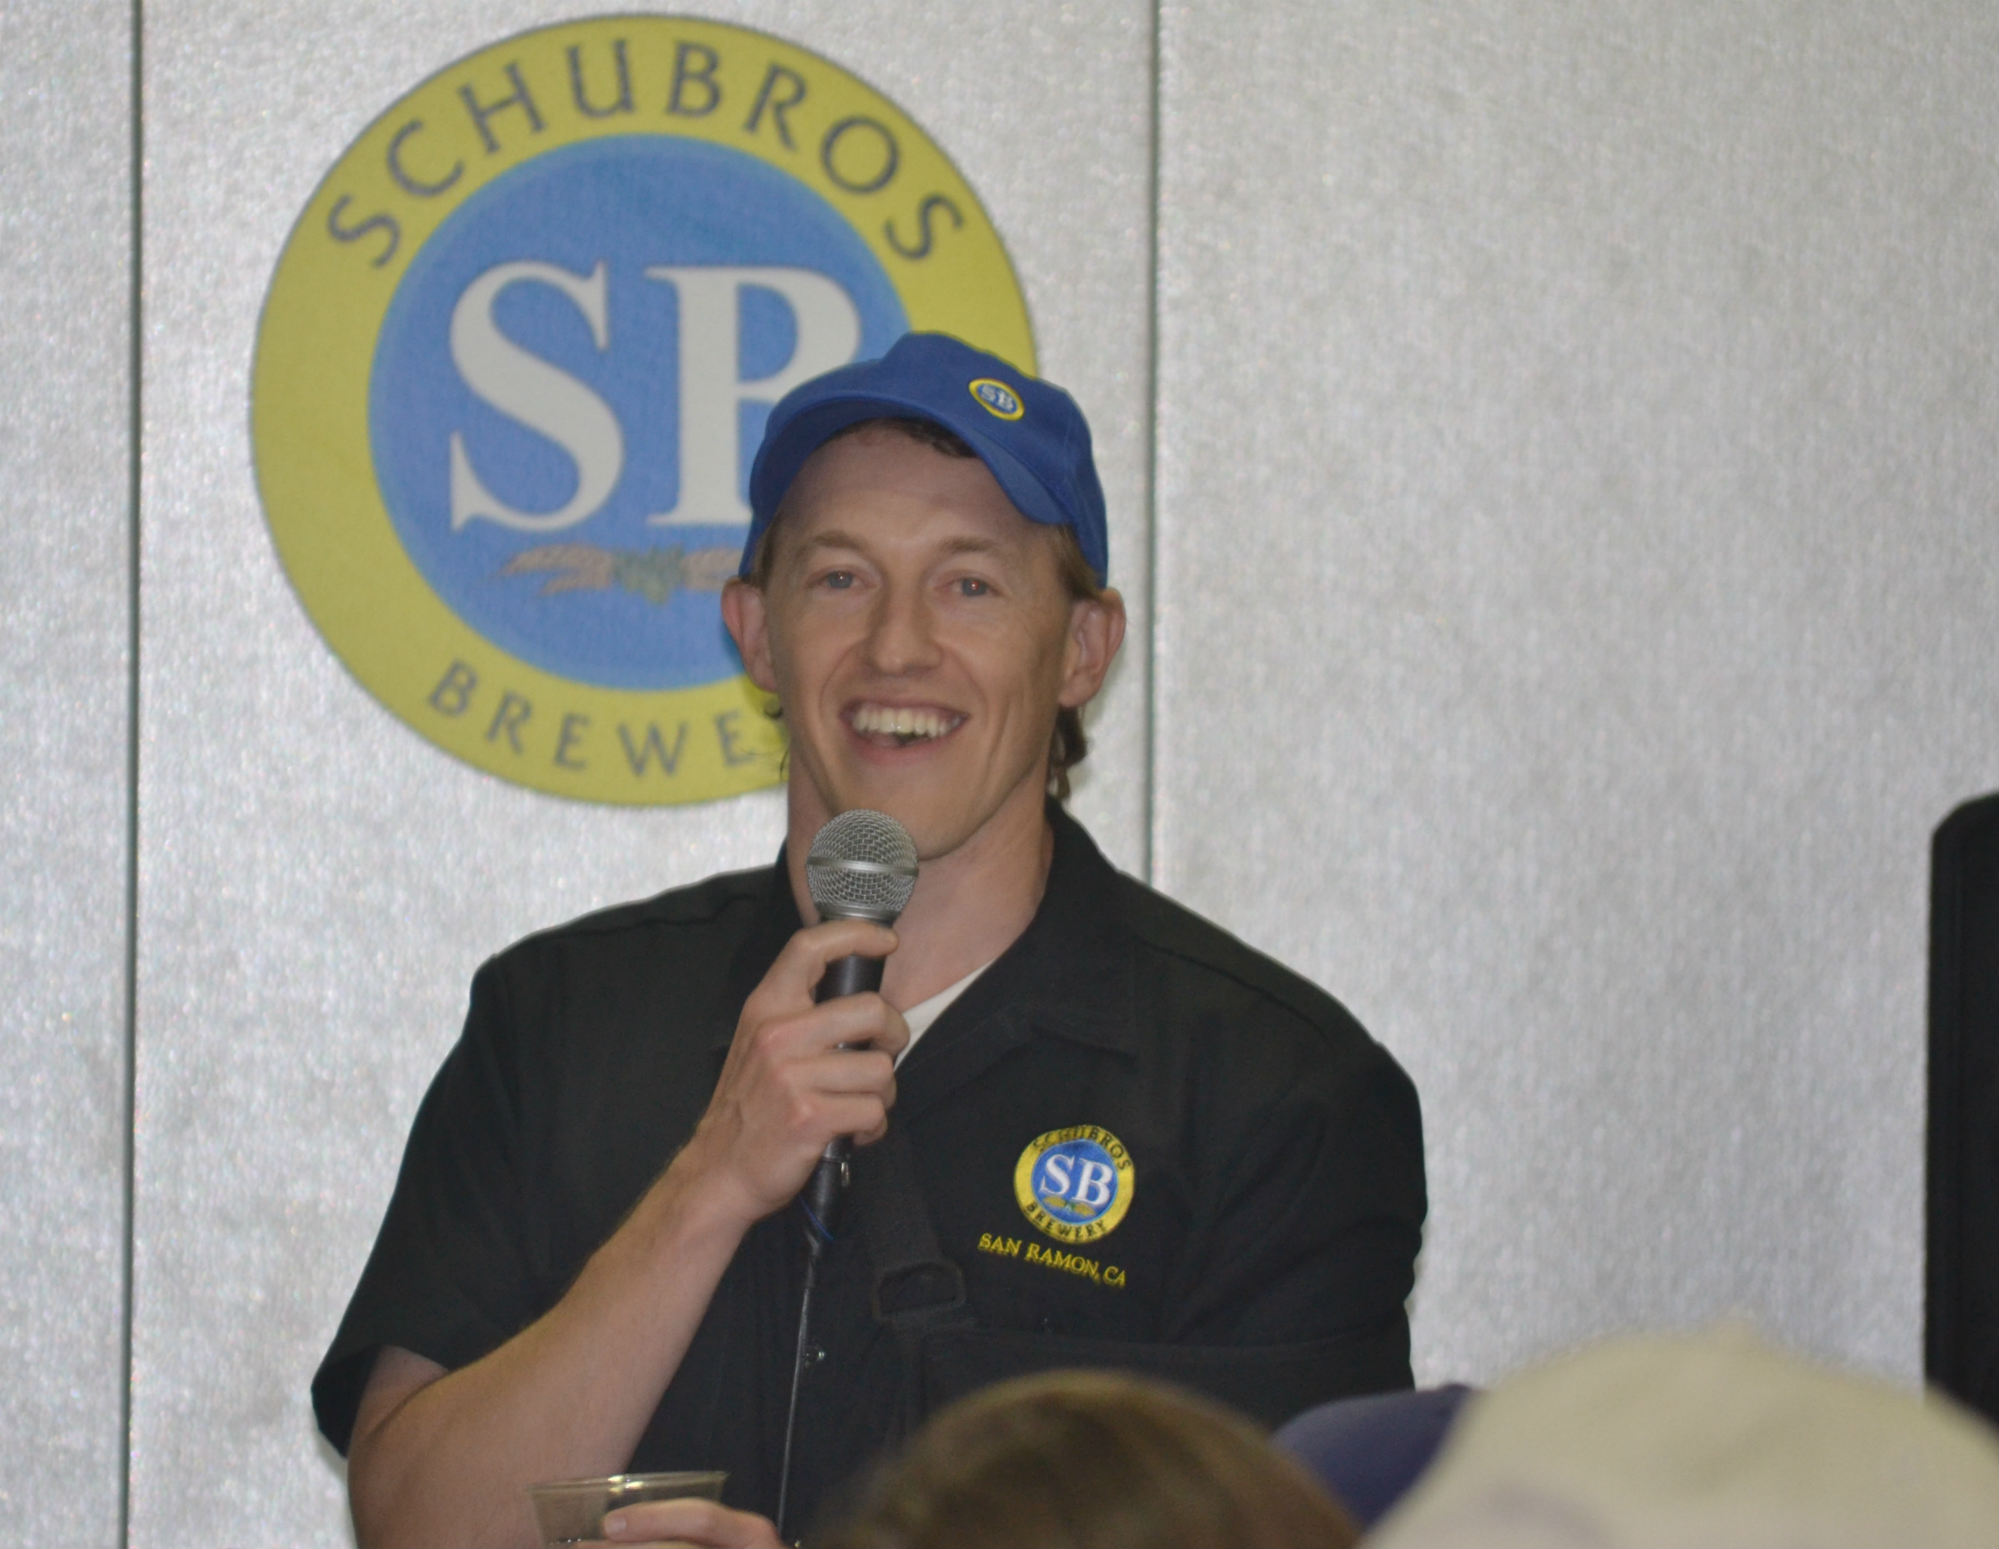 Schubros' President Ian Schuster addresses shareholders at their Distribution HQ